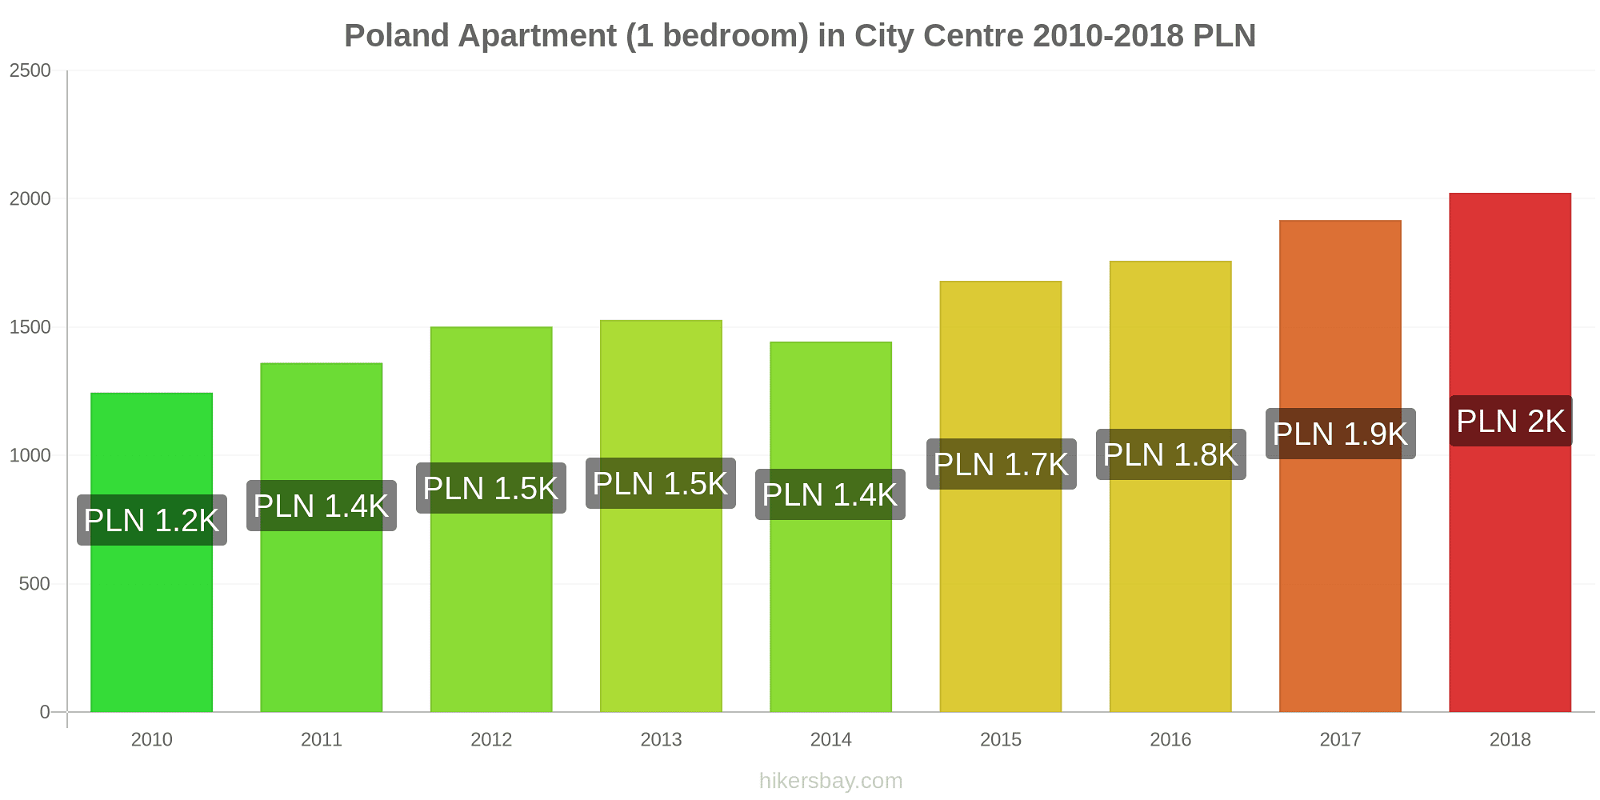 Poland price changes Apartment (1 bedroom) in City Centre hikersbay.com